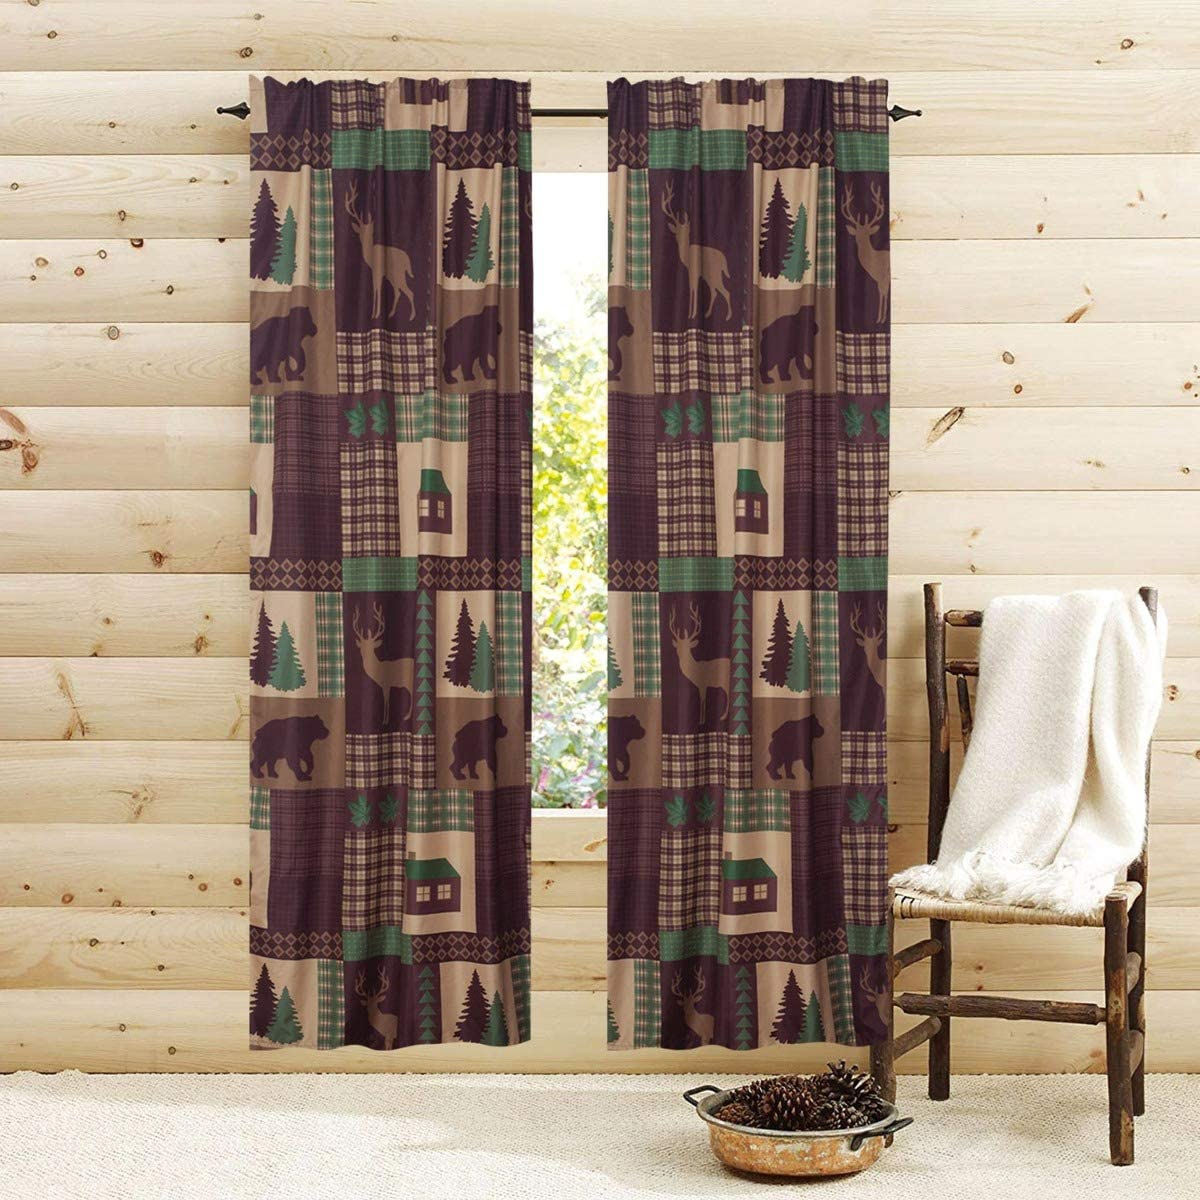 Privacy 84 67% OFF of fixed price in. Rustic Cabin Window Curtains Pair Panel Drapes Lo Classic